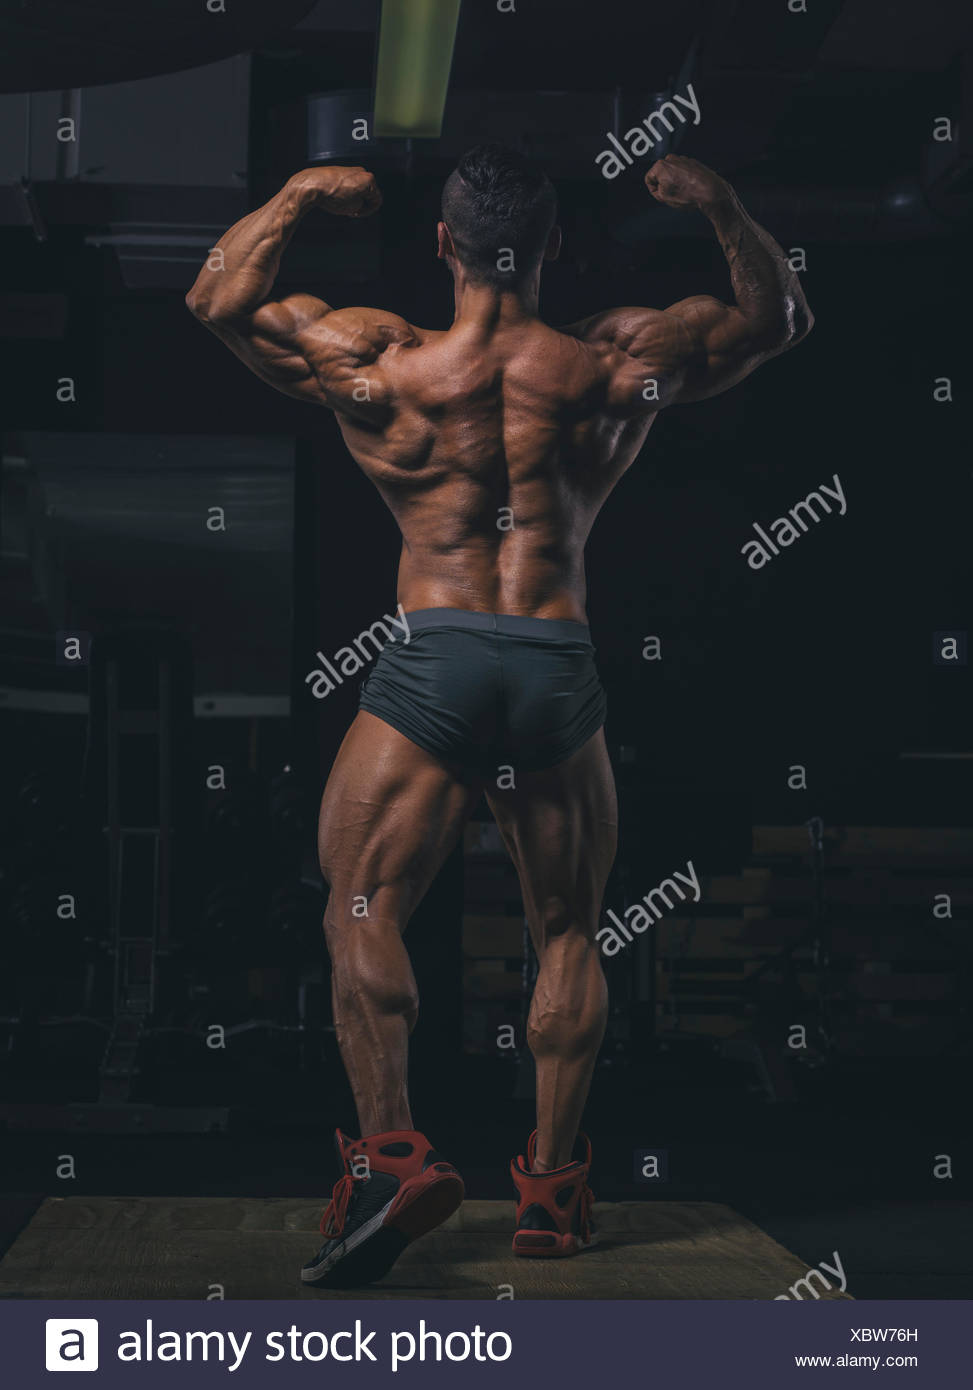 Bodybuilder pperfroming a back double biceps pose in gym - Stock Image